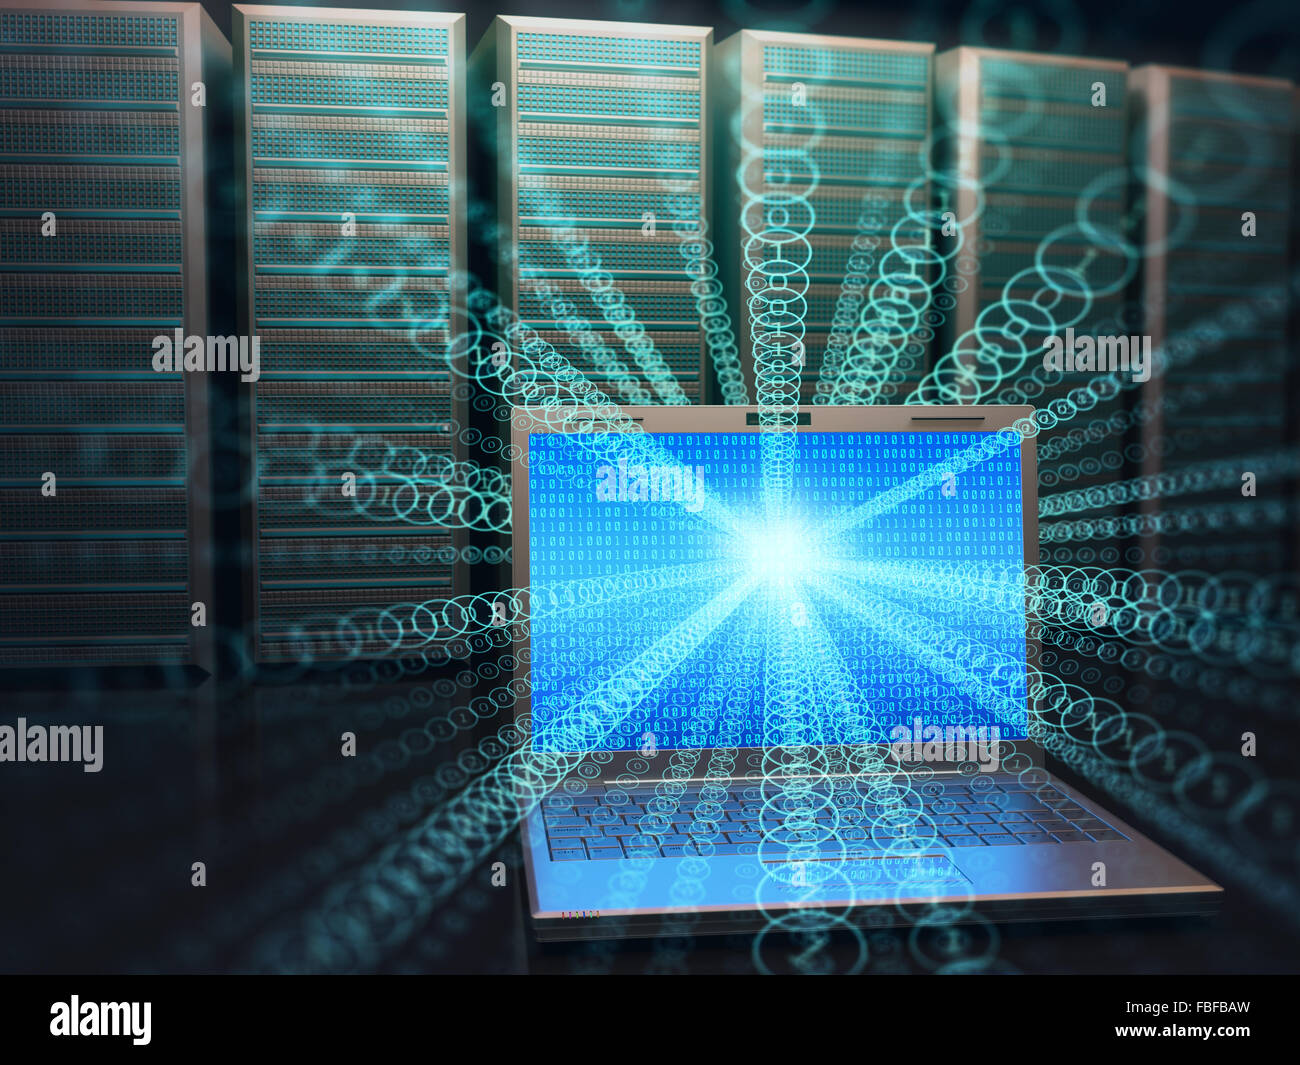 Image concept of technology and science of digital information. One laptop in front of multiple servers with binary - Stock Image